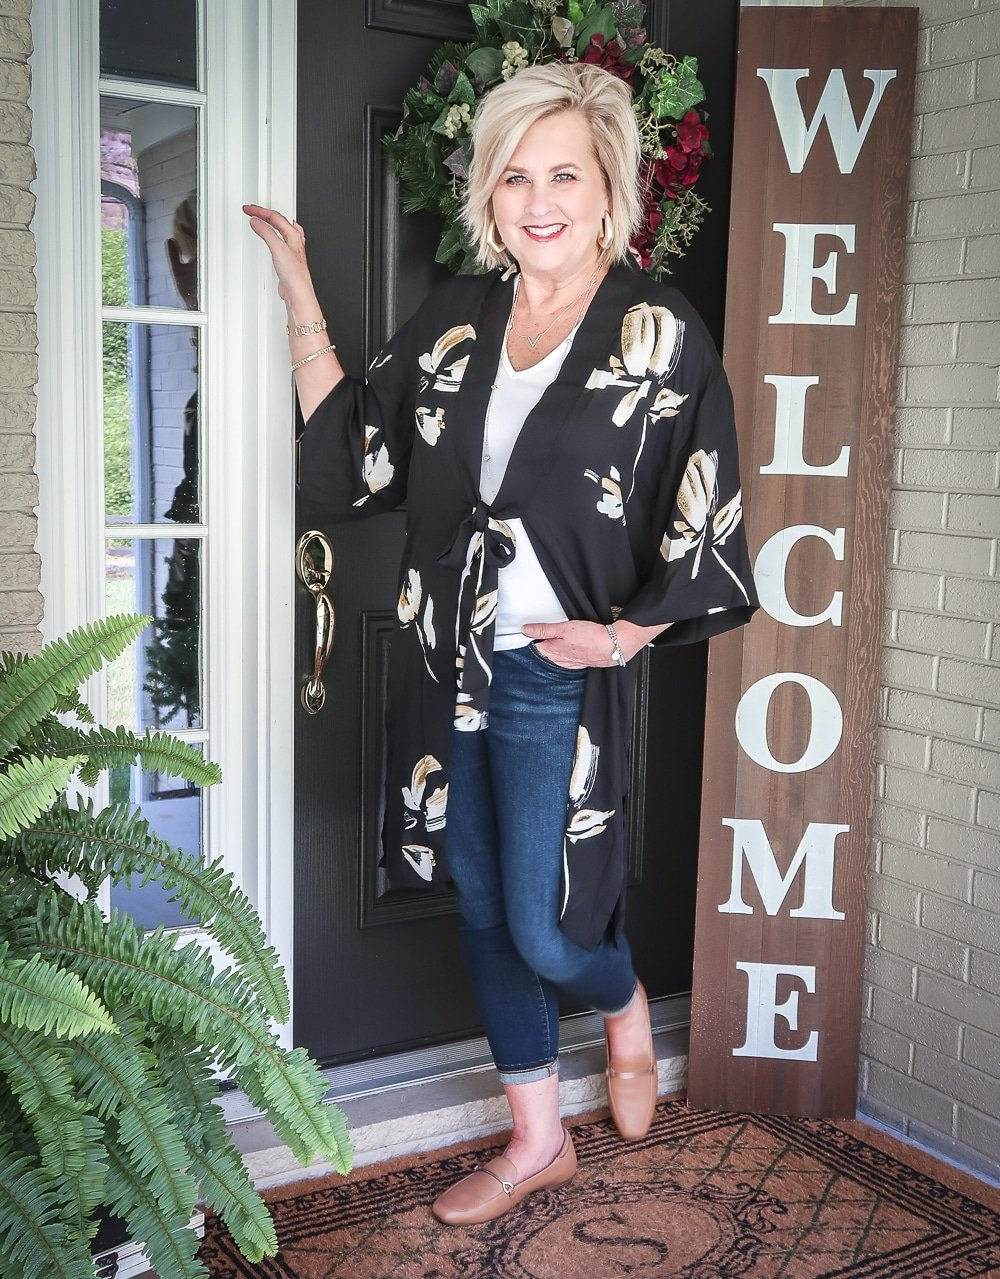 Fashion Blogger 50 Is Not Old is doing a Tuesday Try-On Session with Target and styling a black floral kimono, a white v-neck tee shirt, and dark jeans from Chico's